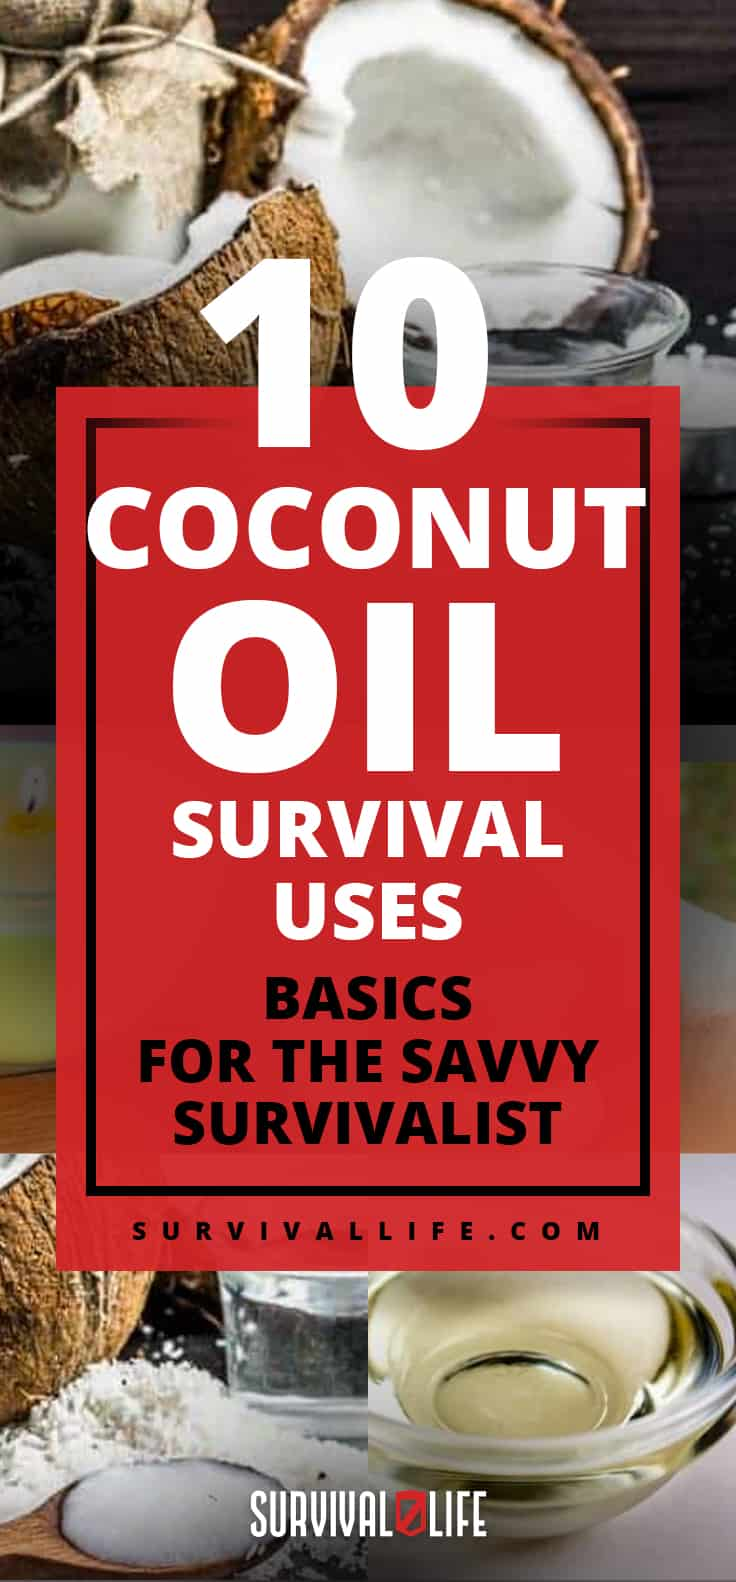 10 Coconut Oil Survival Uses | Basics For The Savvy Survivalist